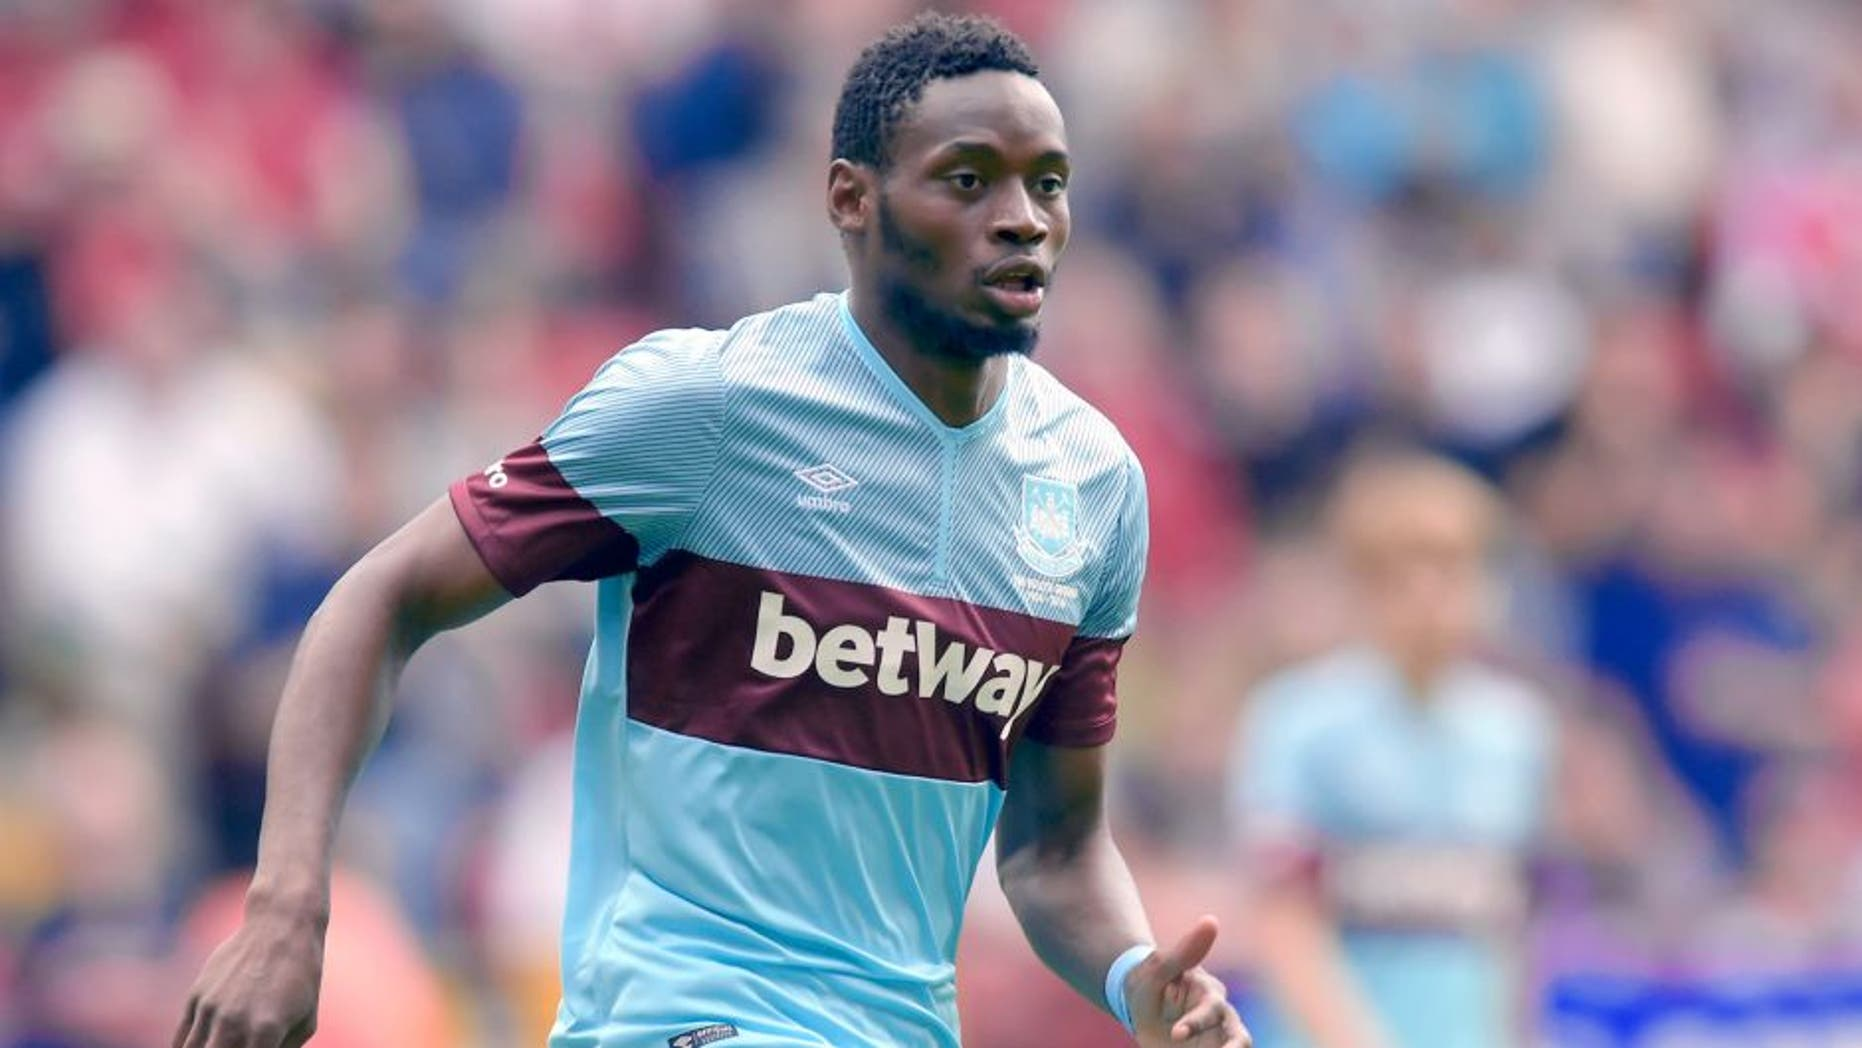 LONDON, ENGLAND - JULY 25: Diafra Sakho of West Ham United in action during the pre season friendly between Charlton Athletic and West Ham United at The Valley on July 25, 2015 in London, England. (Photo by Arfa Griffiths/Getty Images)